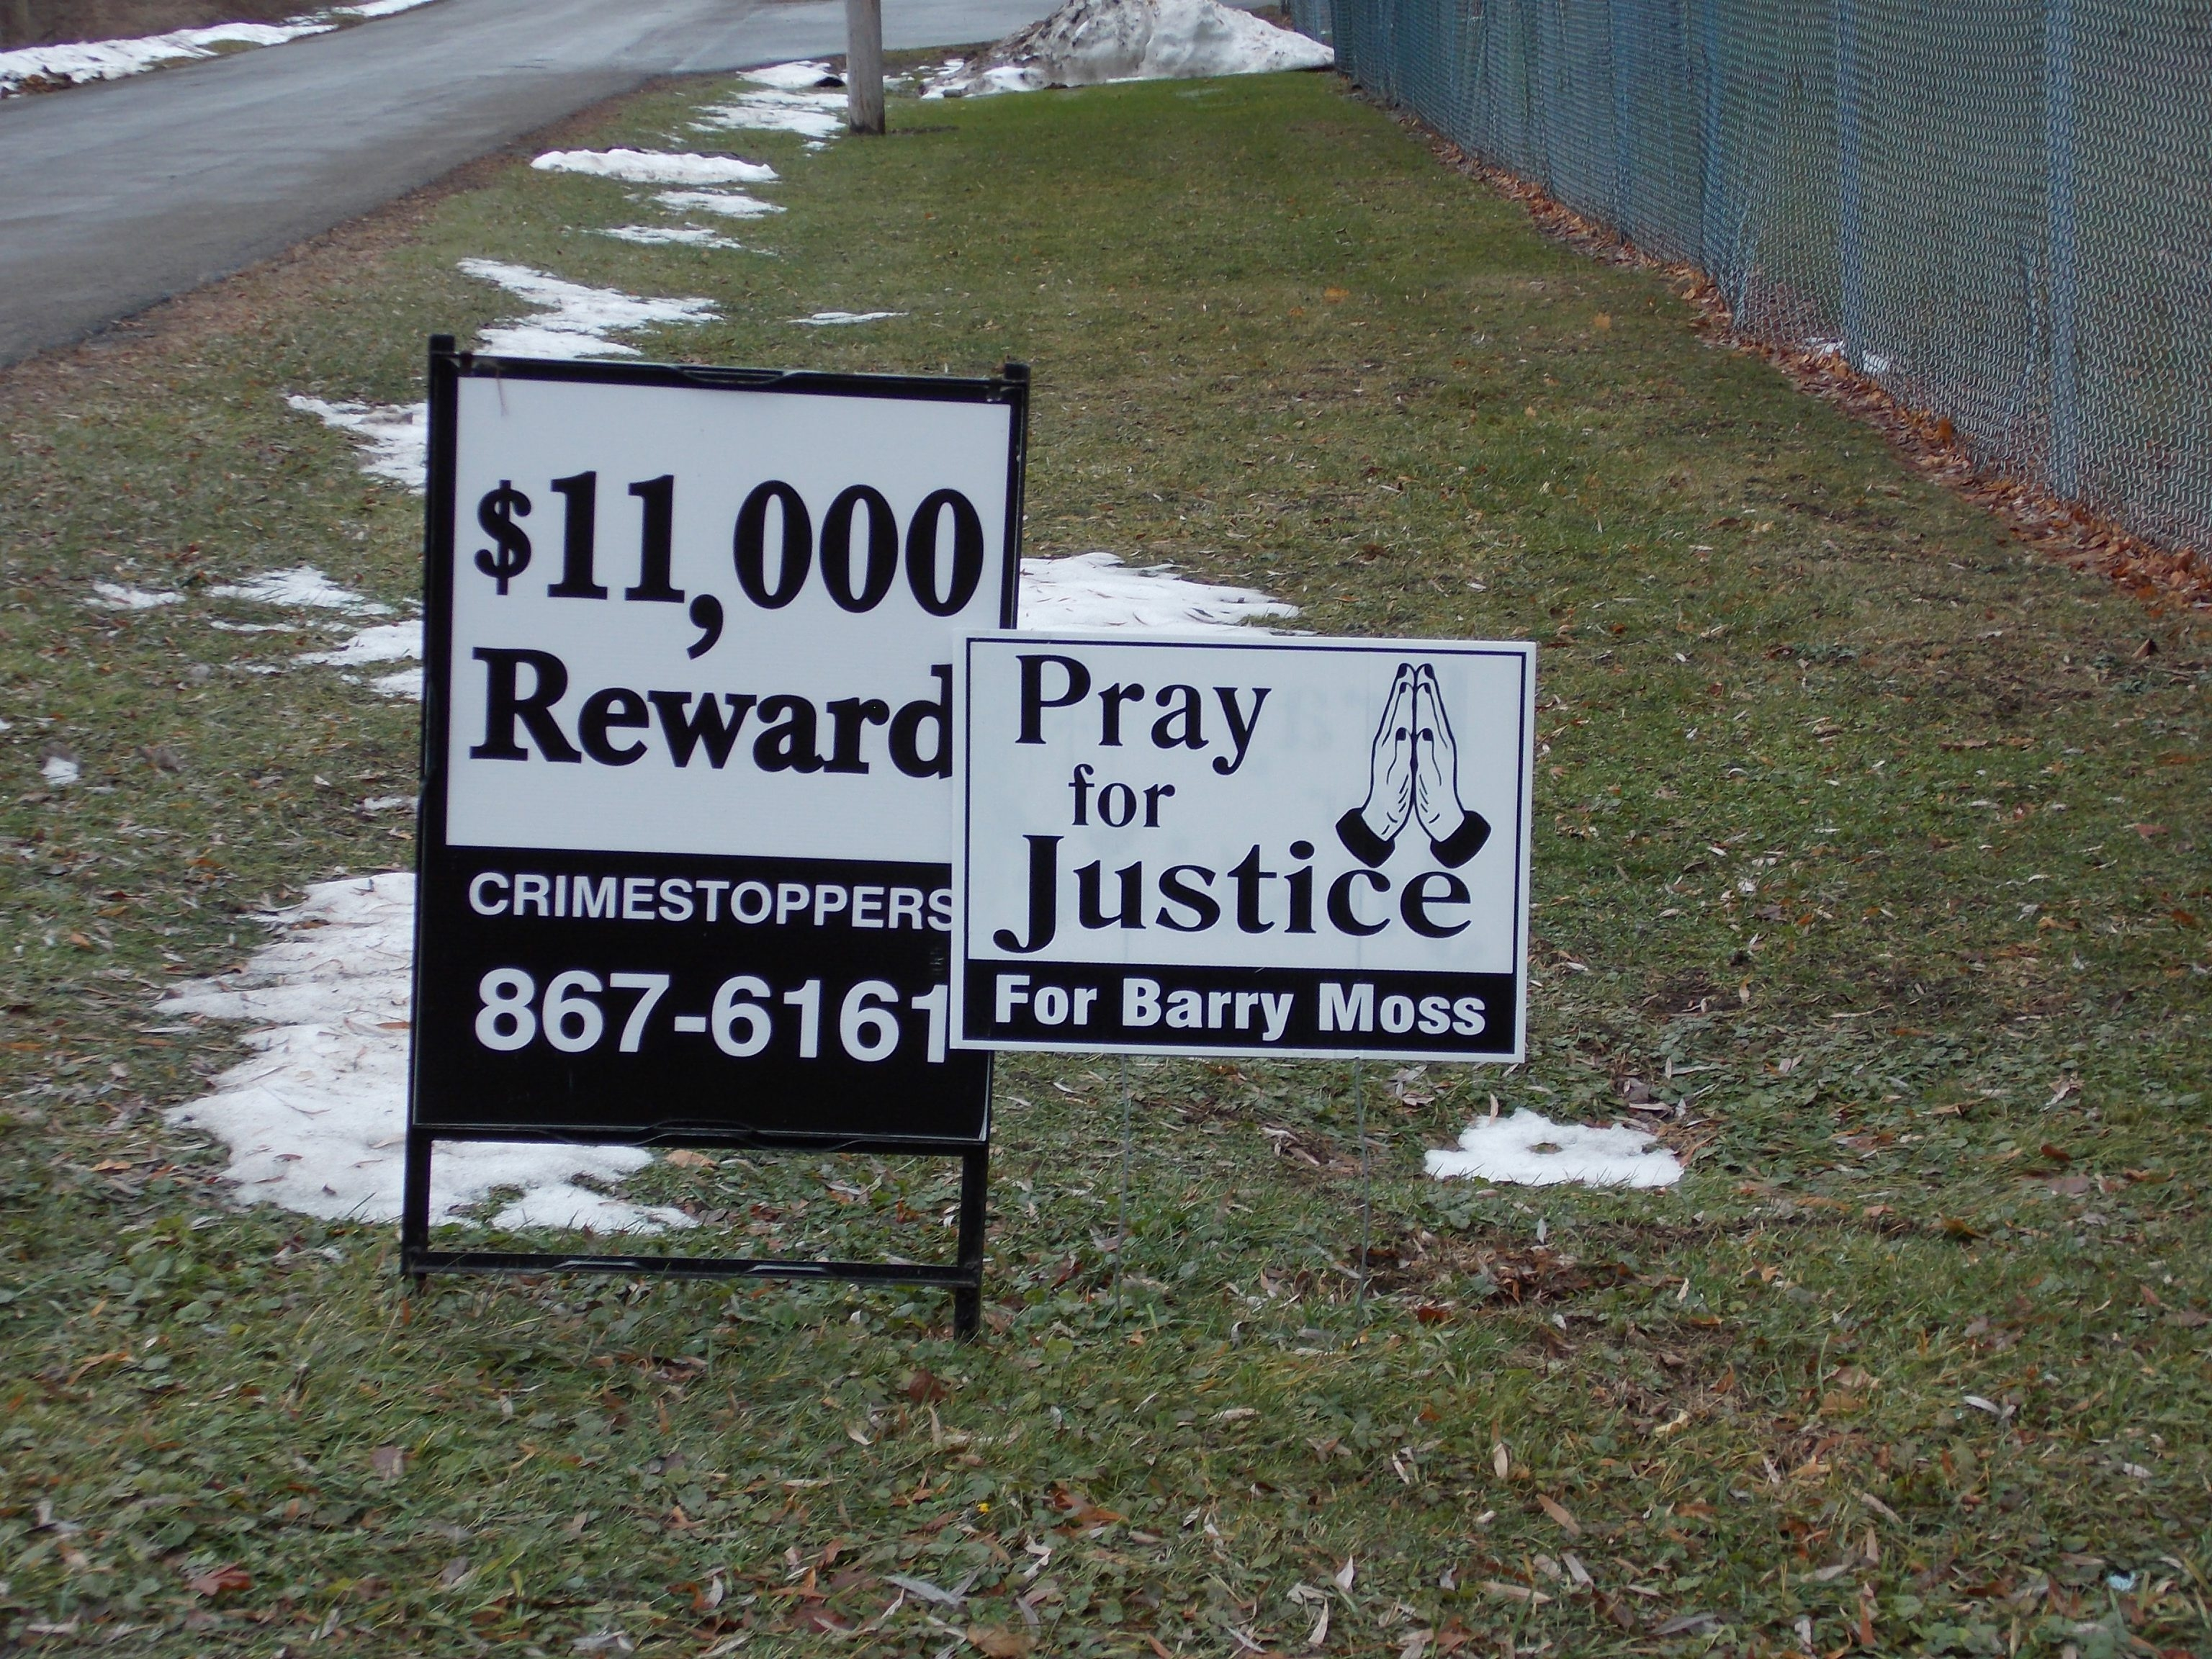 Barry Moss died in a hit-and-run accident a year ago Monday.